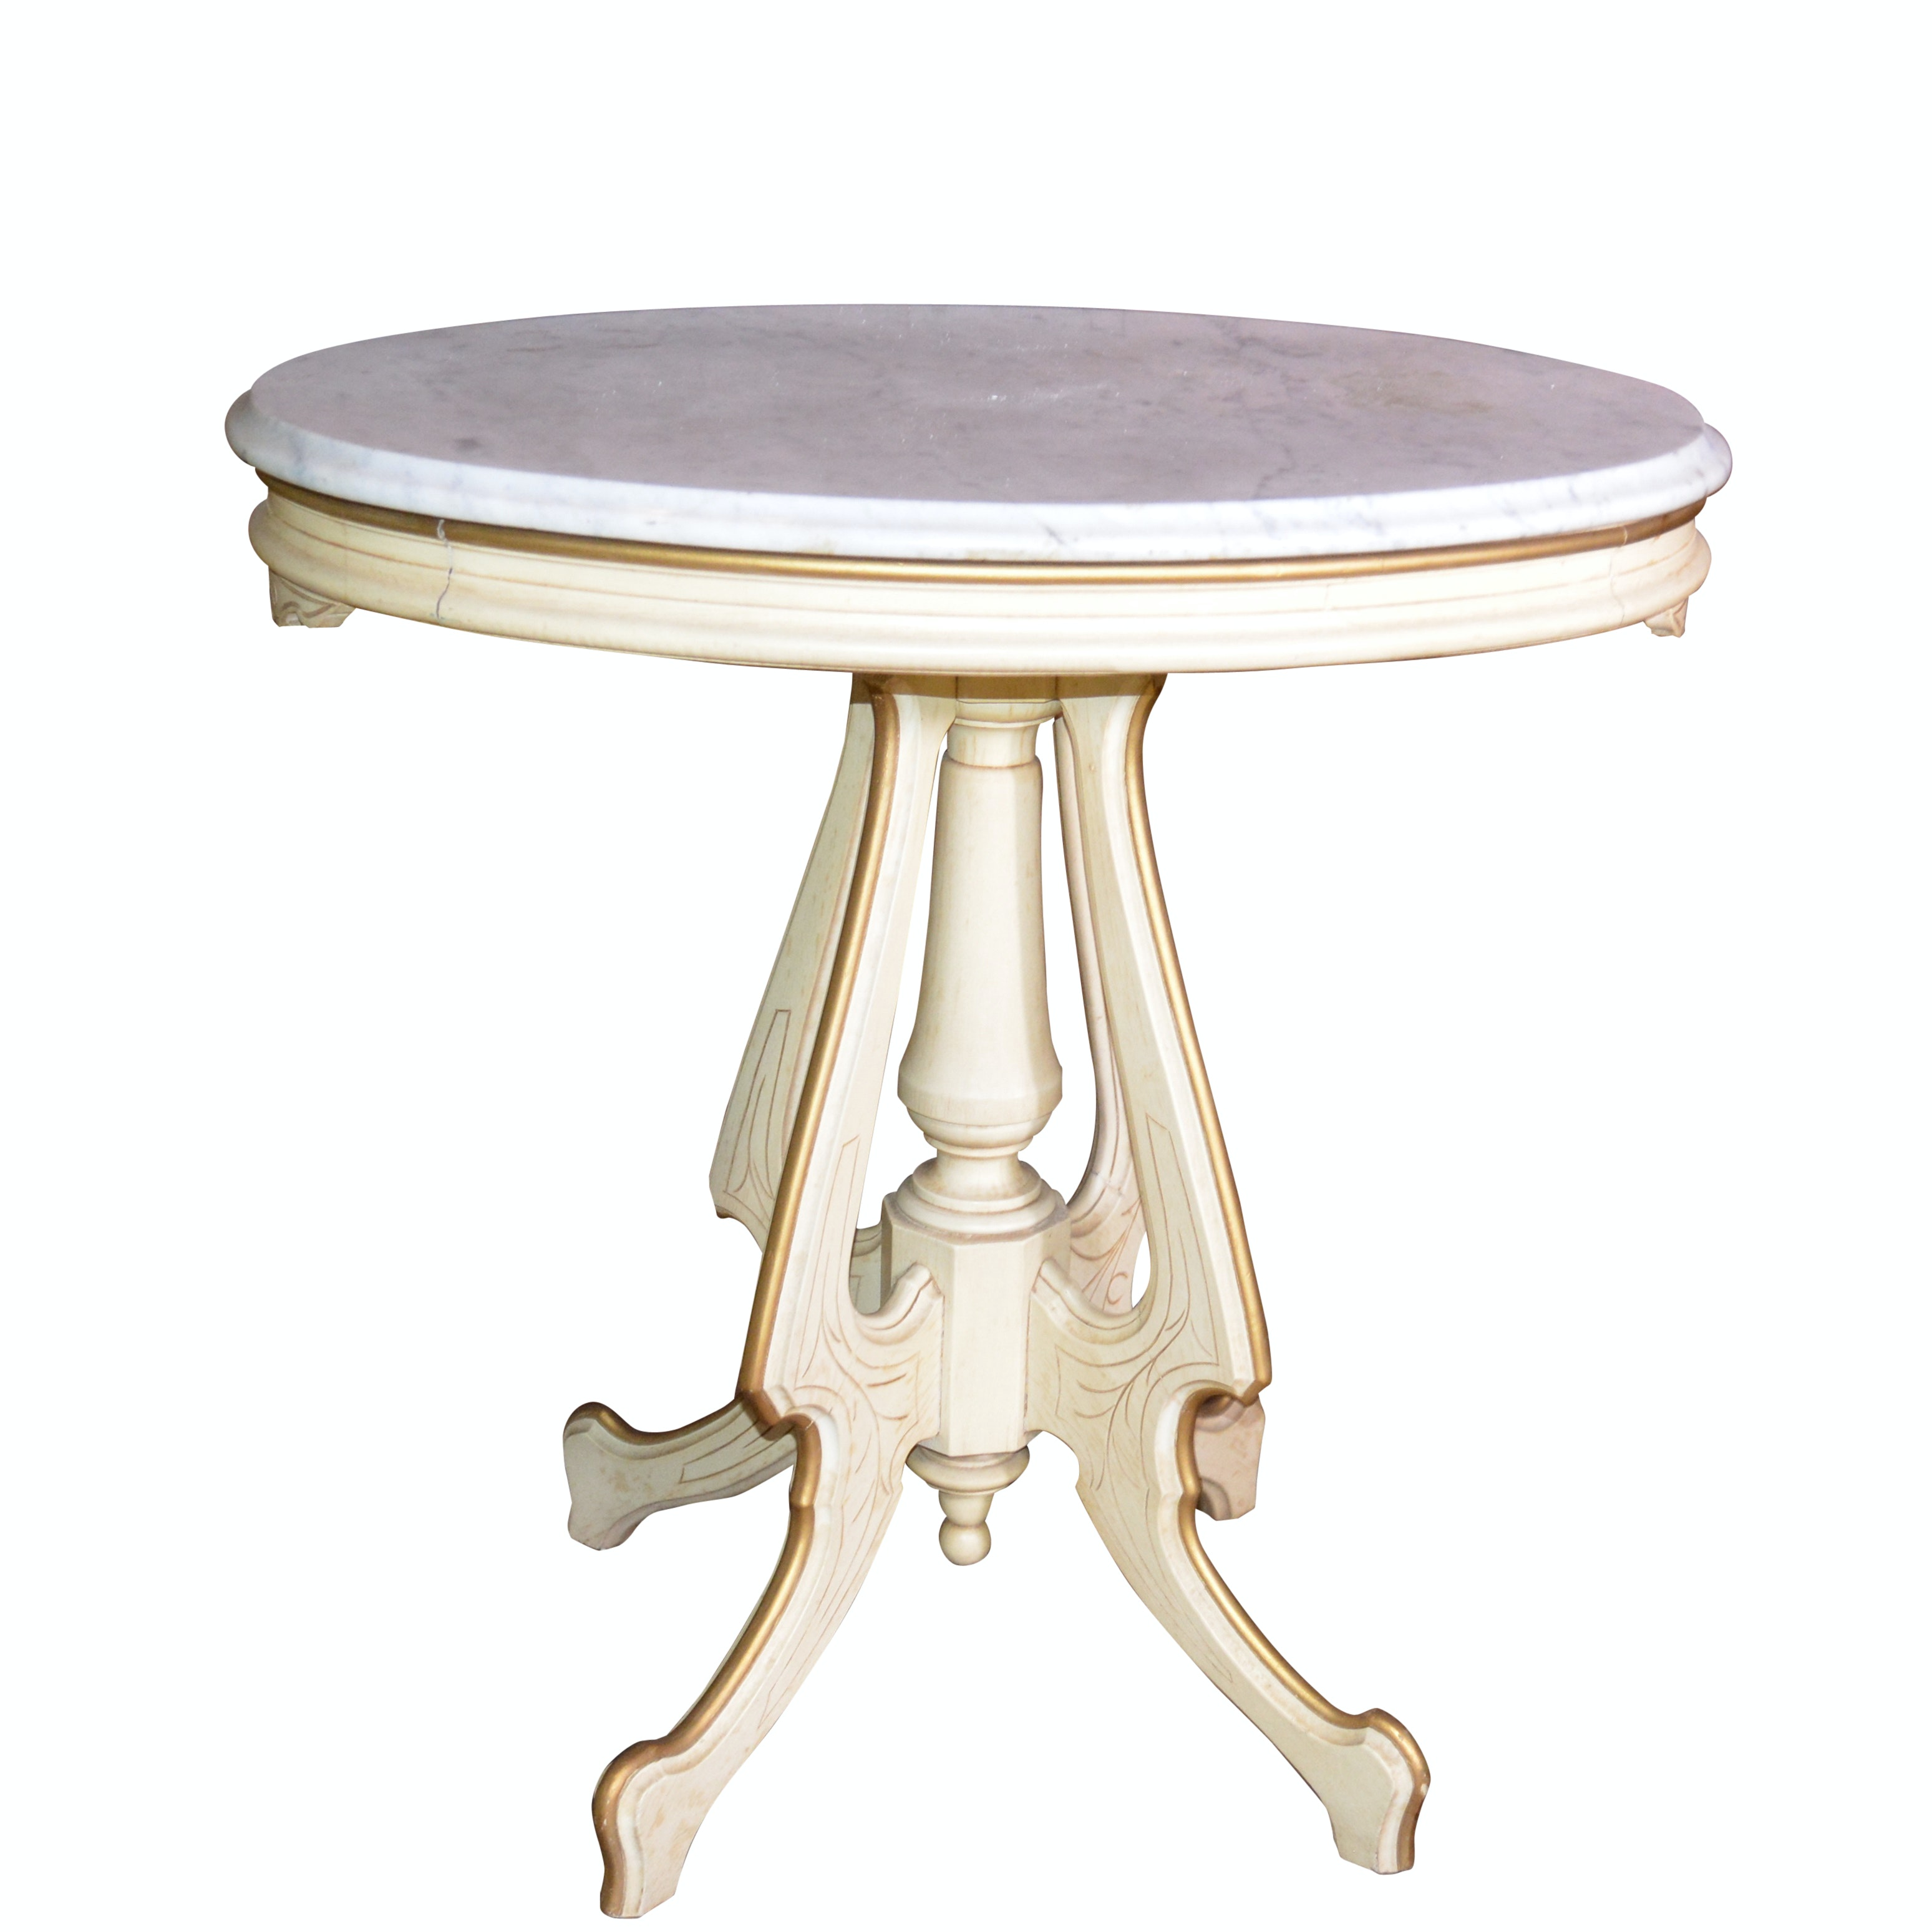 Eastlake Style Painted Wood Lamp Table, 20th Century